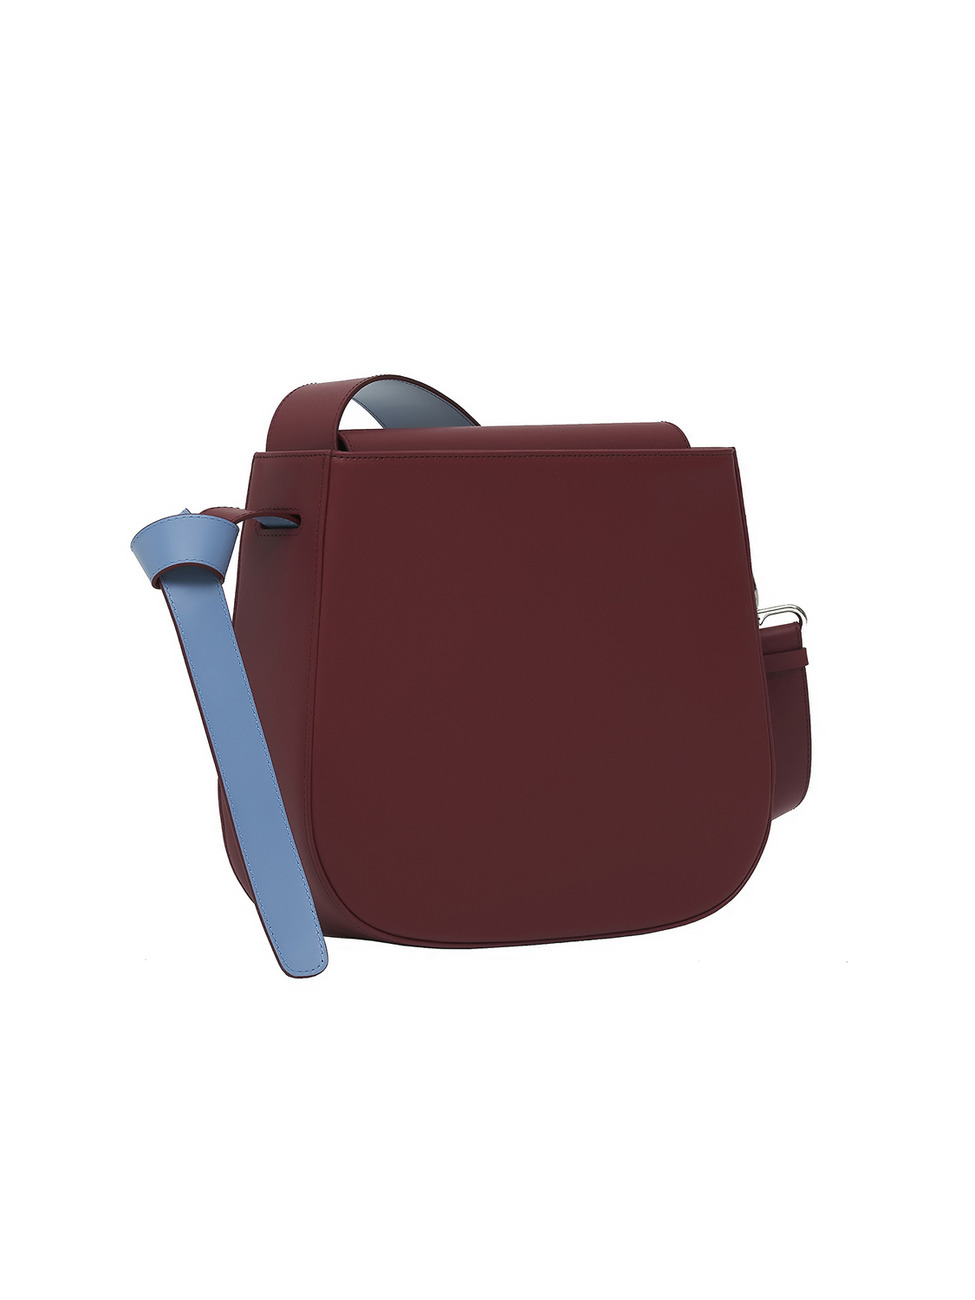 COLOR BLOCK BAG - BIG BURGANDY